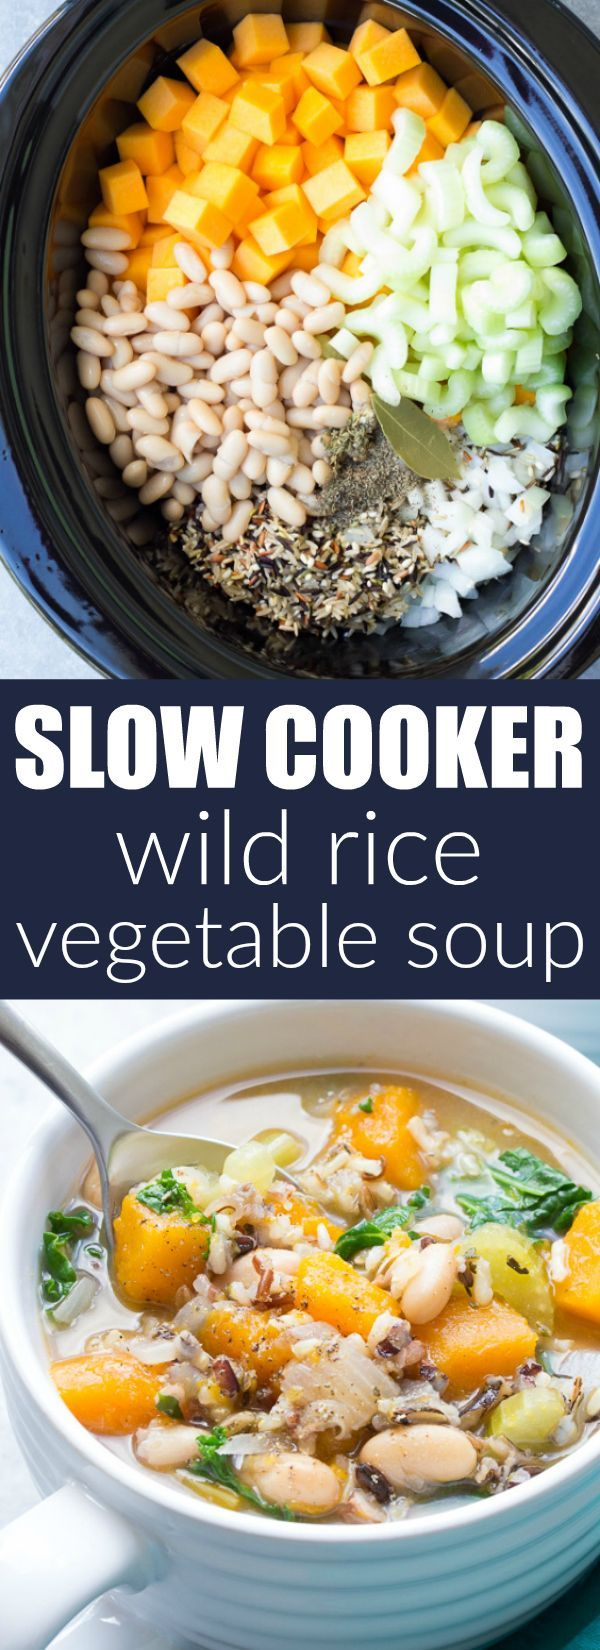 Slow Cooker Wild Rice Vegetable Soup This Healthy Crock Pot Soup Is Great For Meal Prep Lunches An Easy Crockpot Soup Vegan Slow Cooker Crockpot Soup Recipes